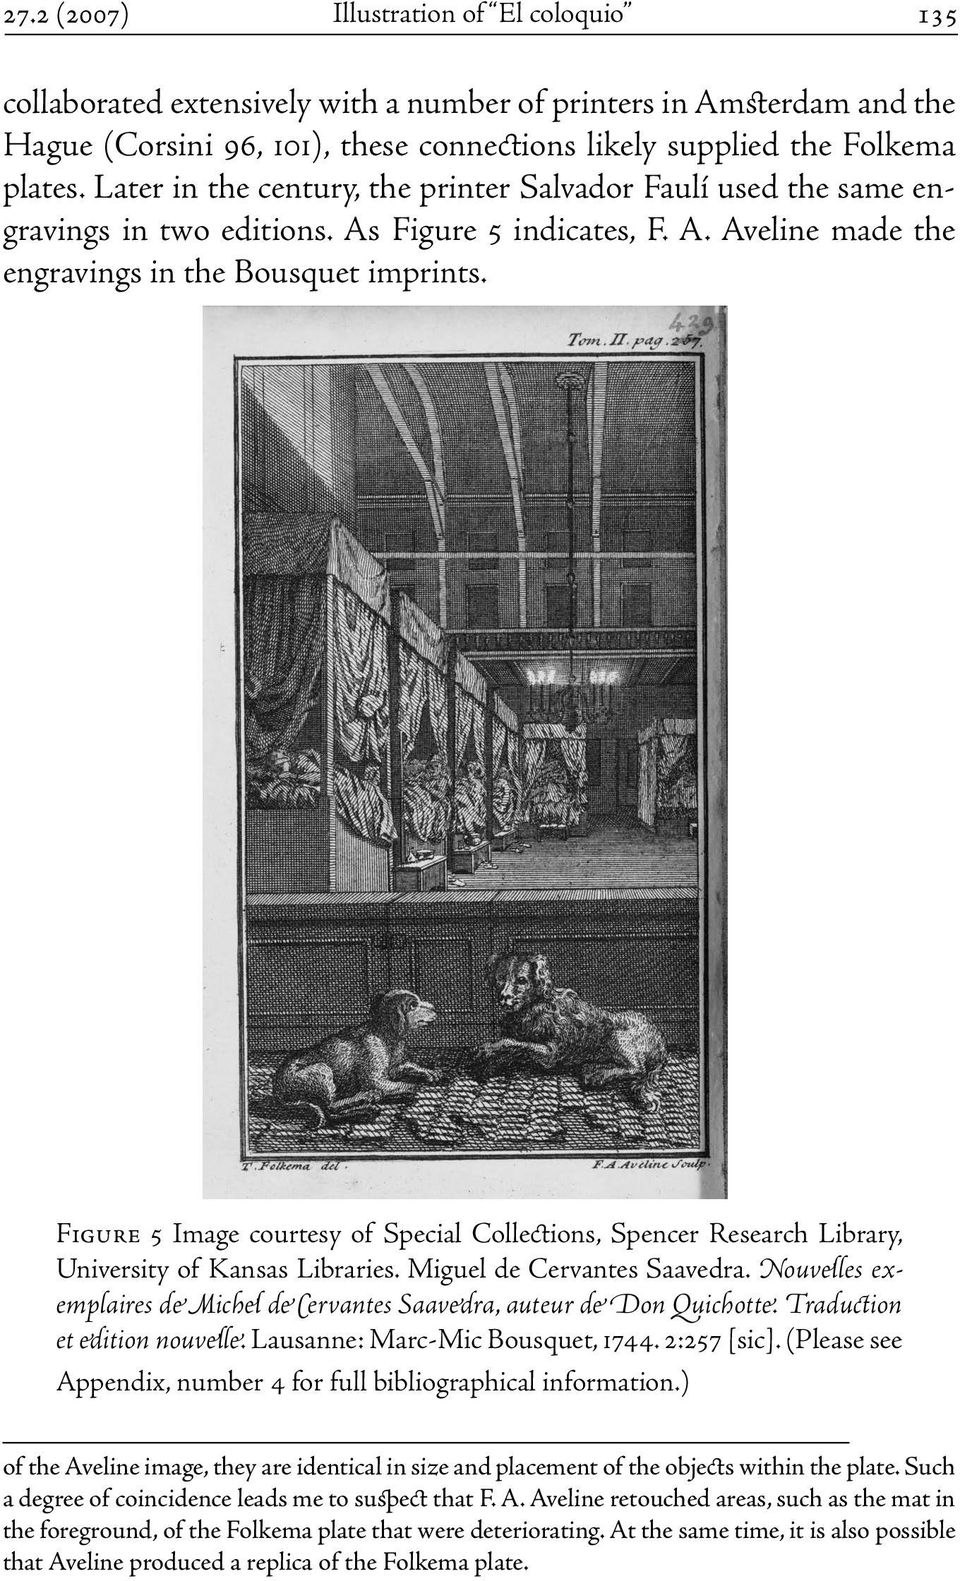 Ximeno, makes another print of two dogs seated in front of wall that separates them from a sickroom scene (Appendix, number 9).